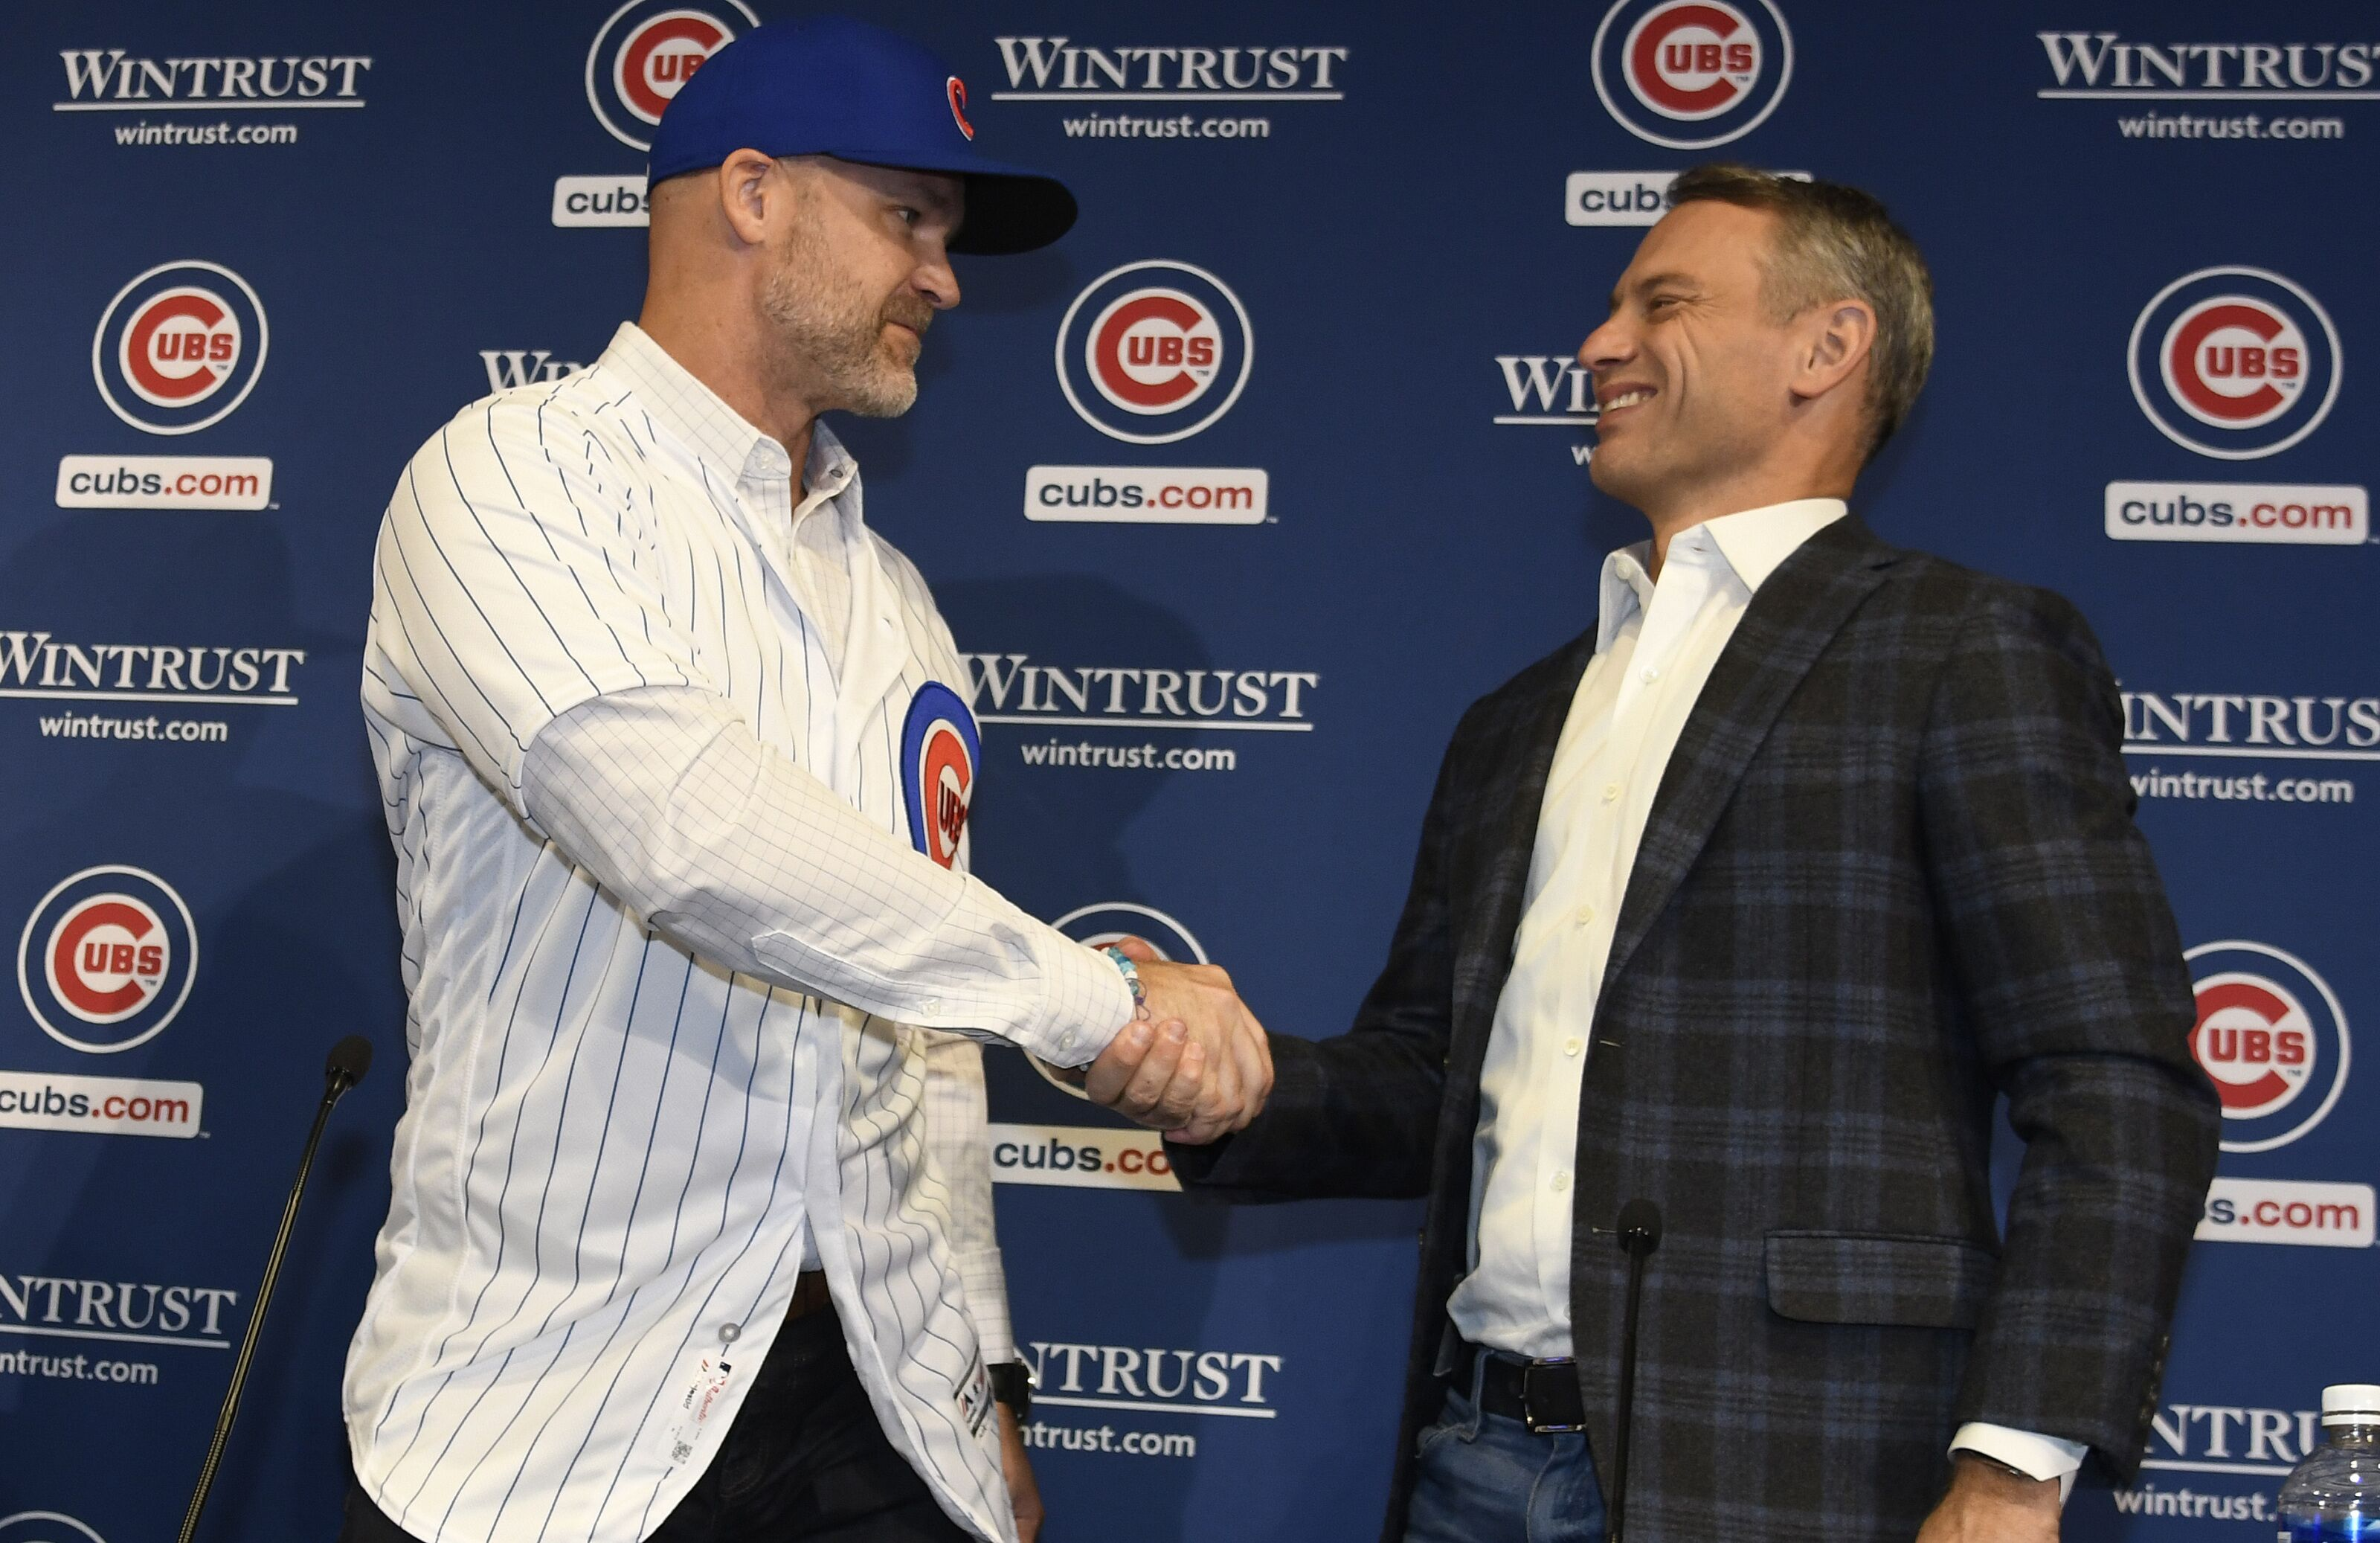 Chicago Cubs David Ross will have influence on free agent targets